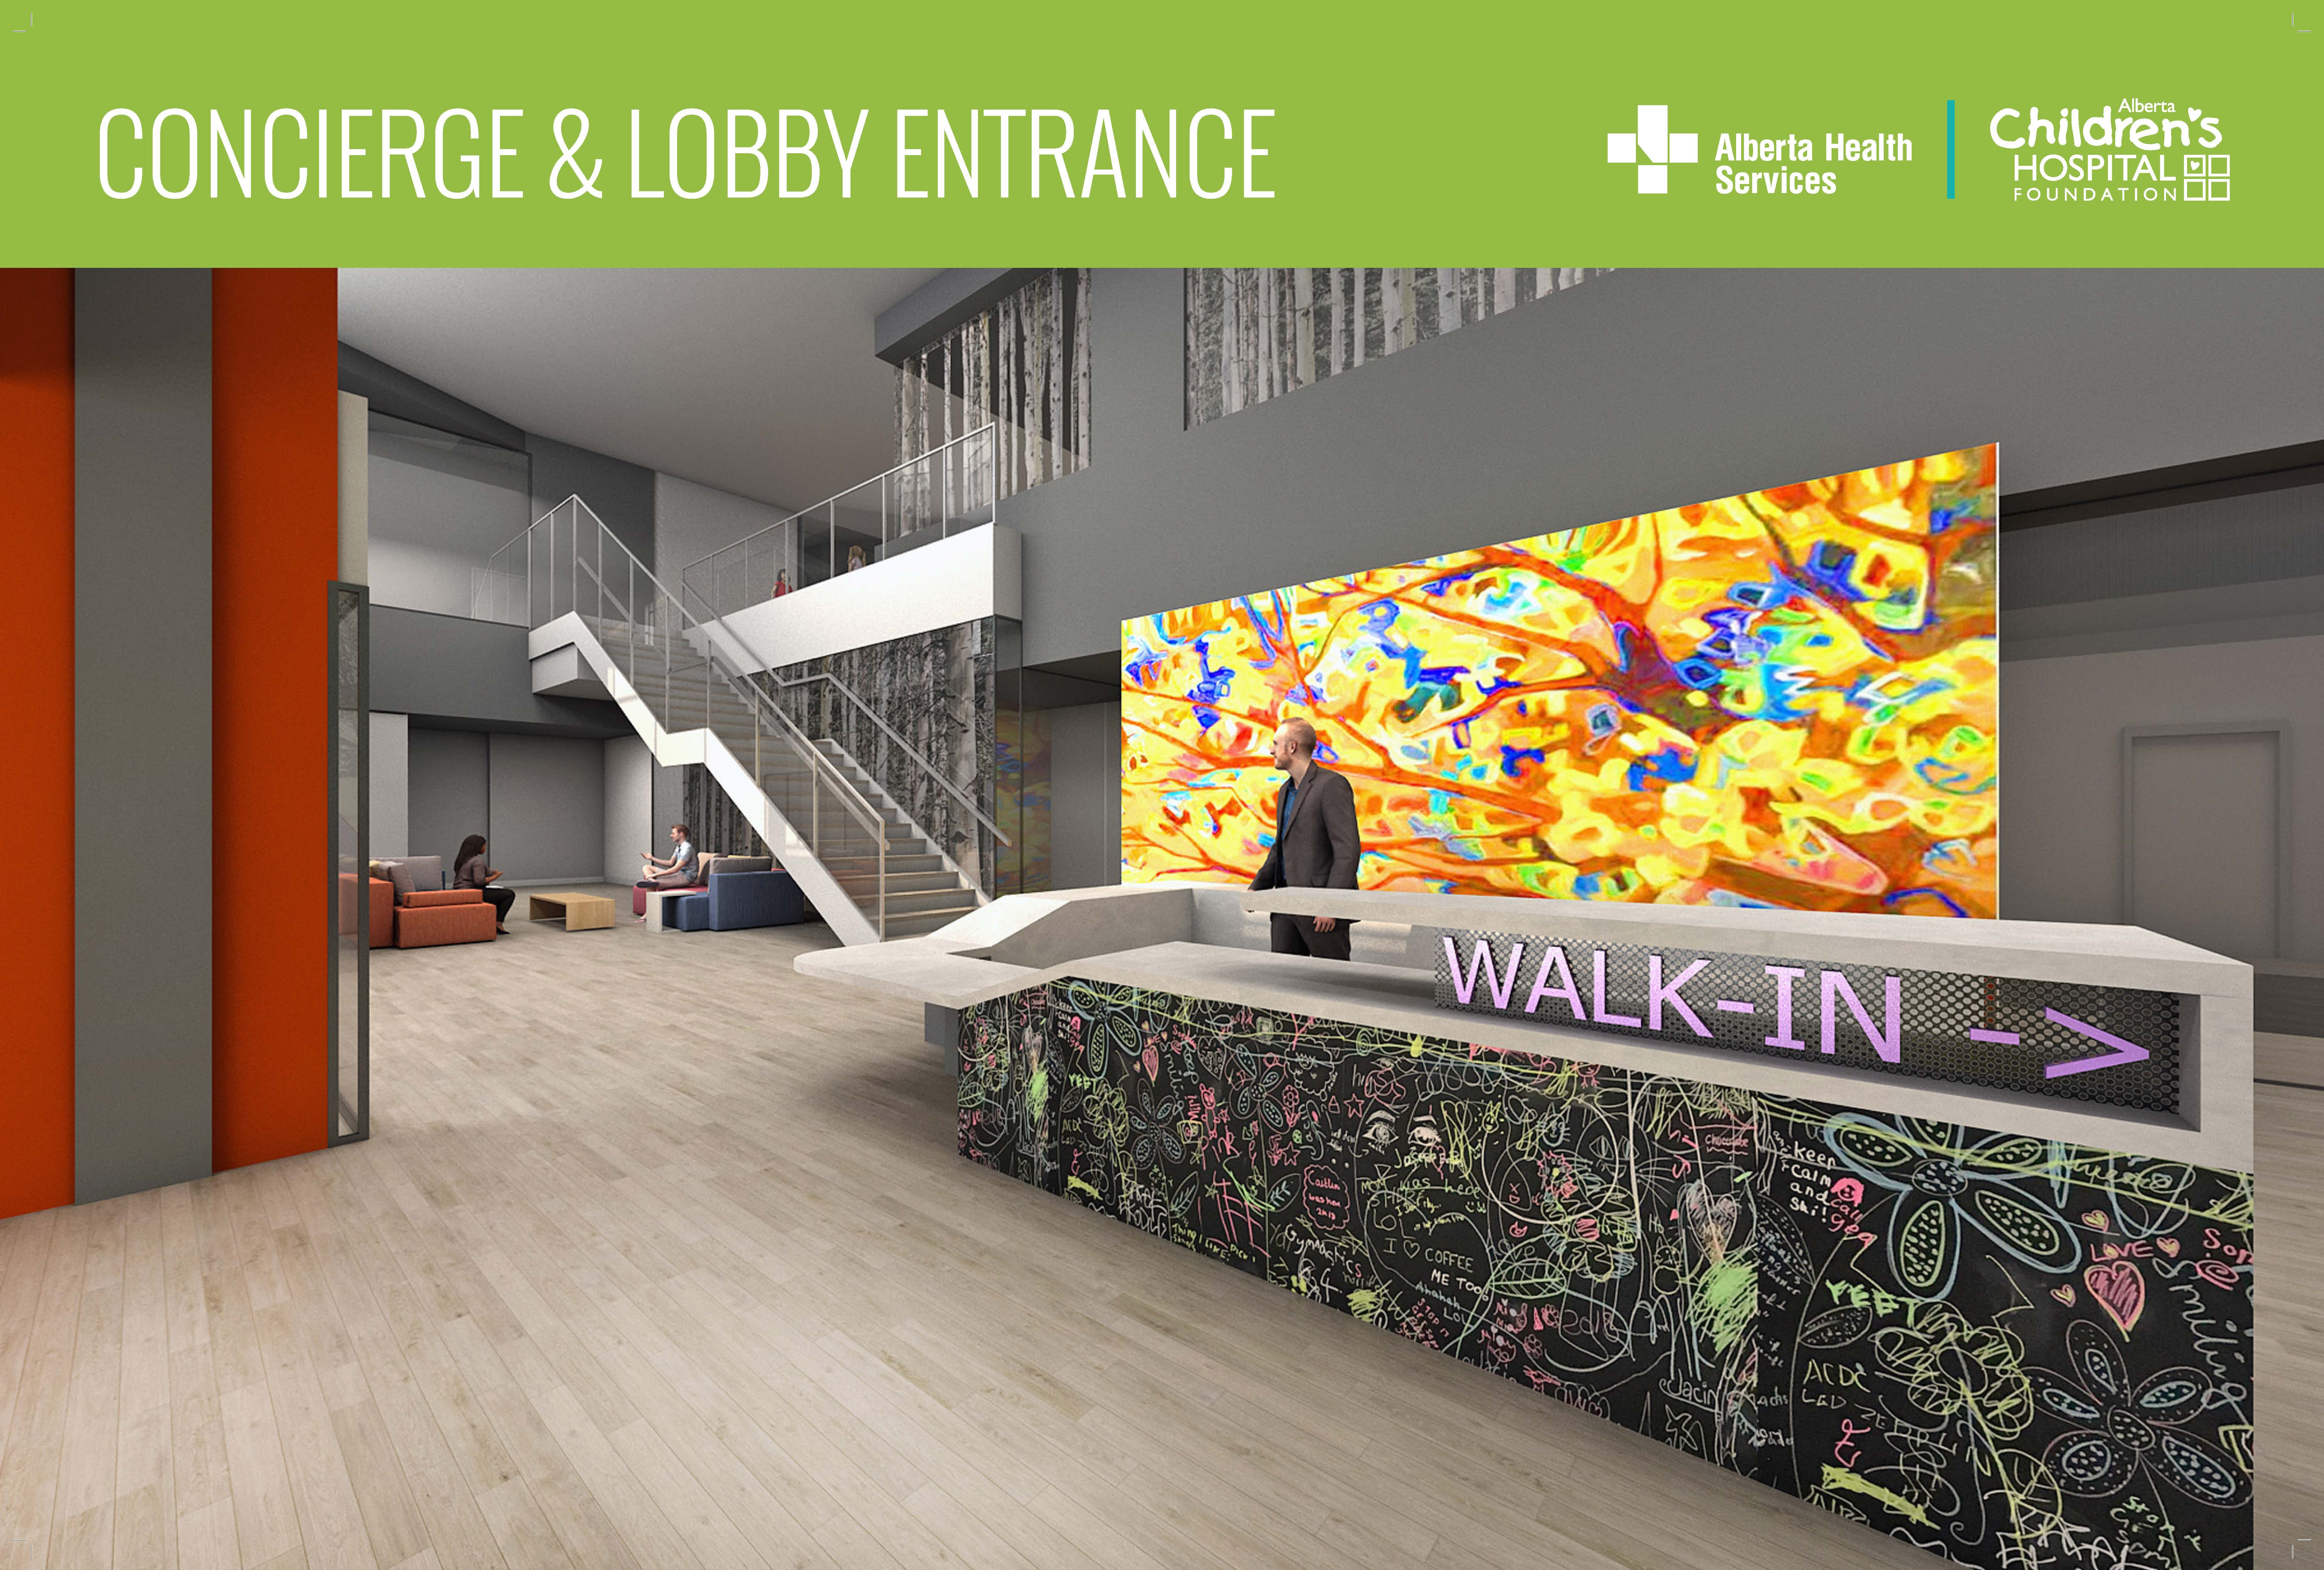 Concierge and lobby entrance